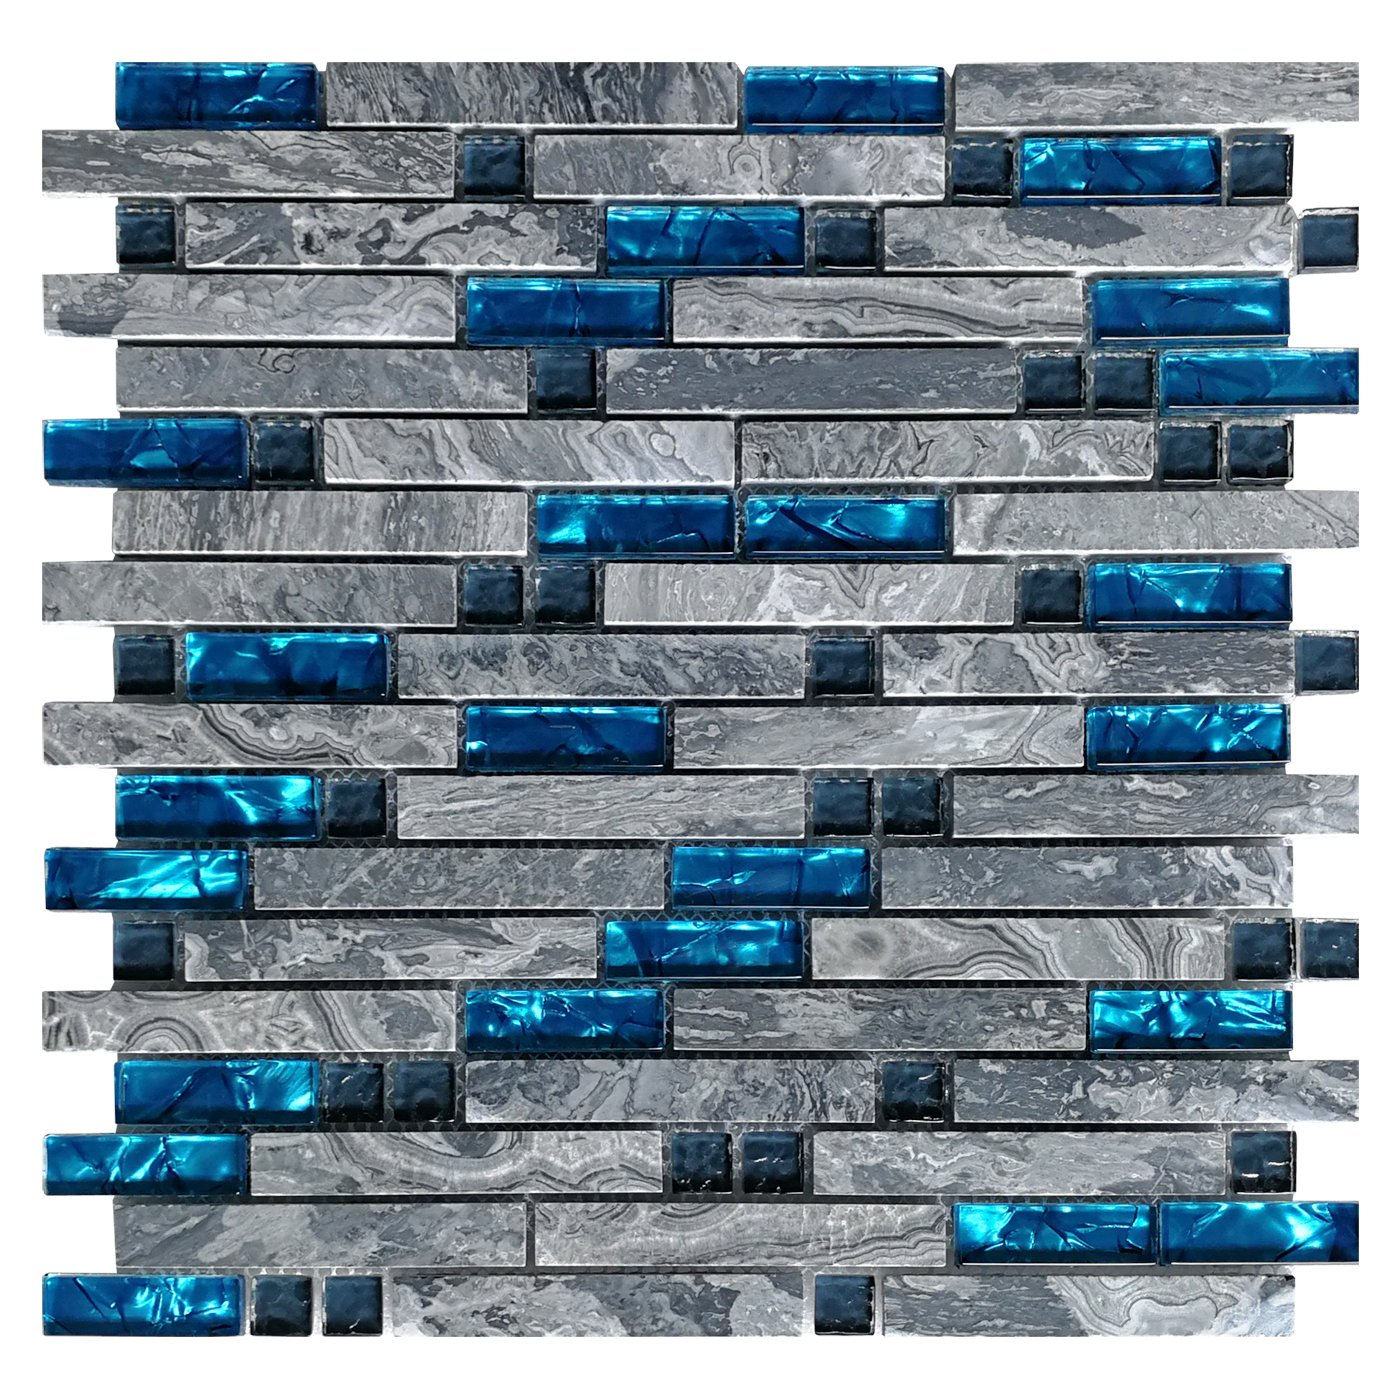 Art3d Decorative Tile for Kitchen Backsplash or Bathroom Backsplash (5 Pack) by Art3d